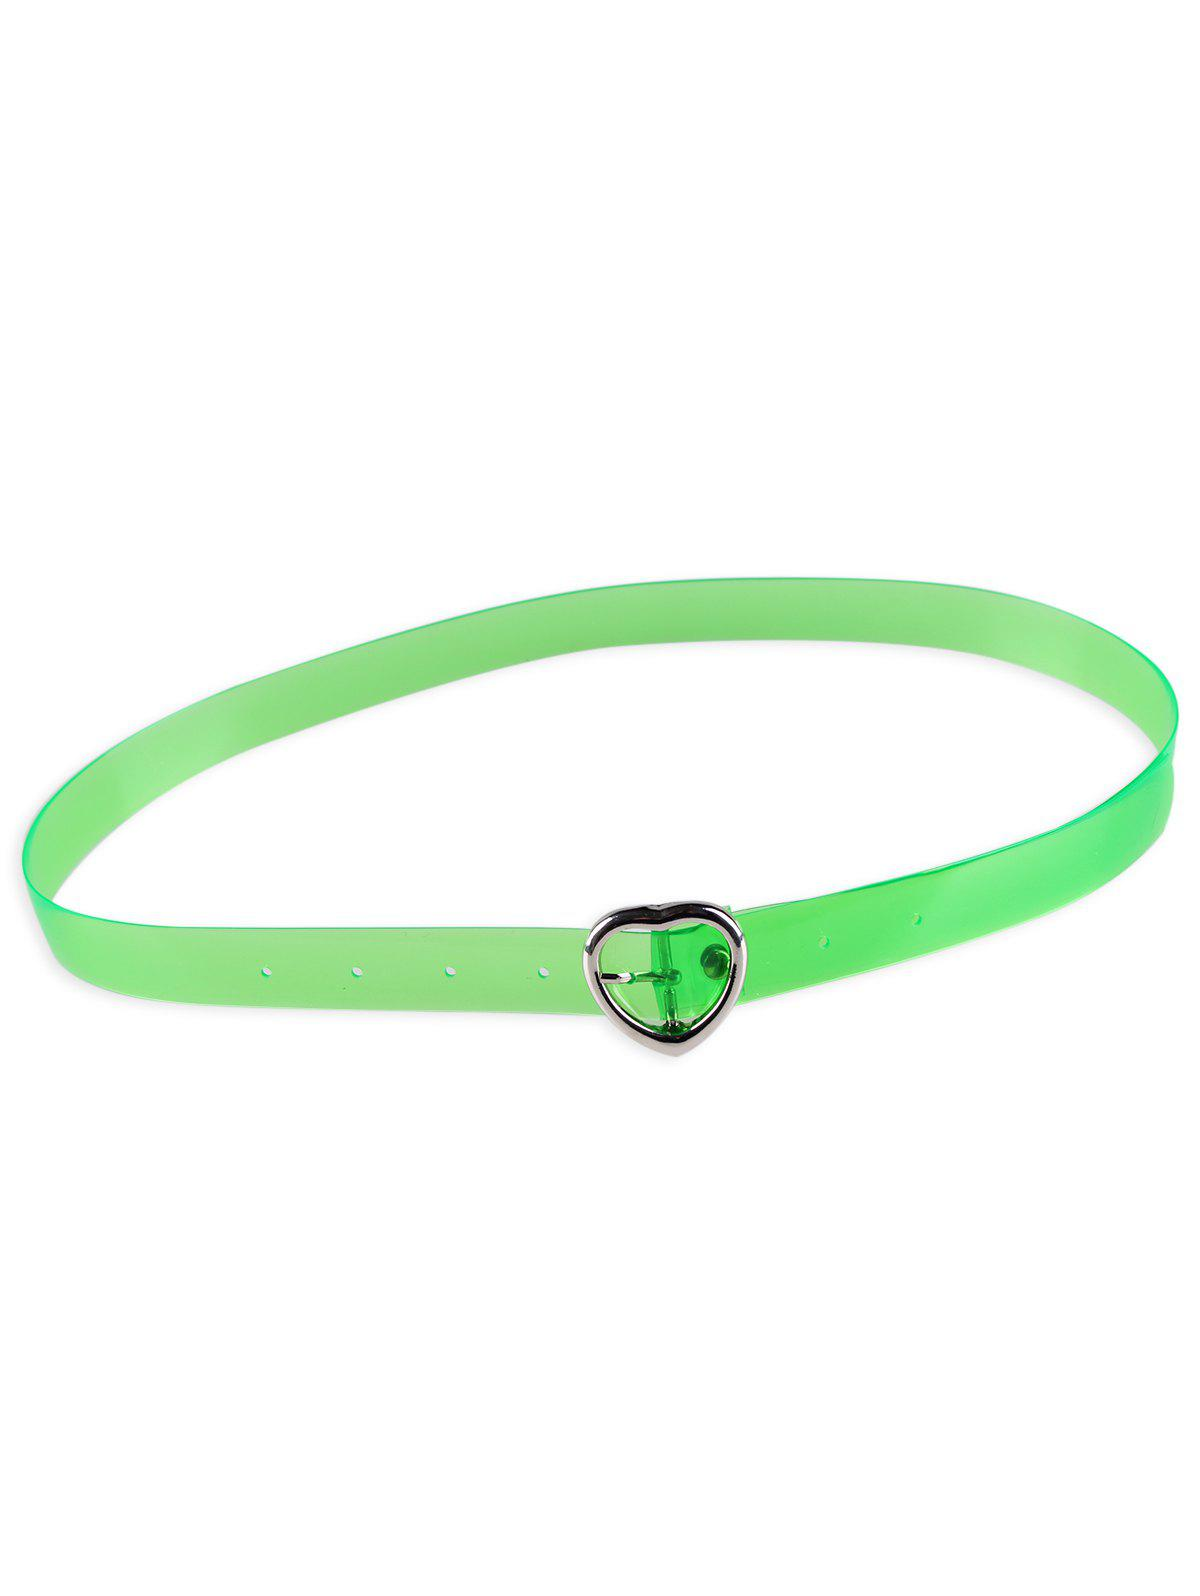 Statement Transparent Waist Belt with Metal Heart Buckle - GREEN